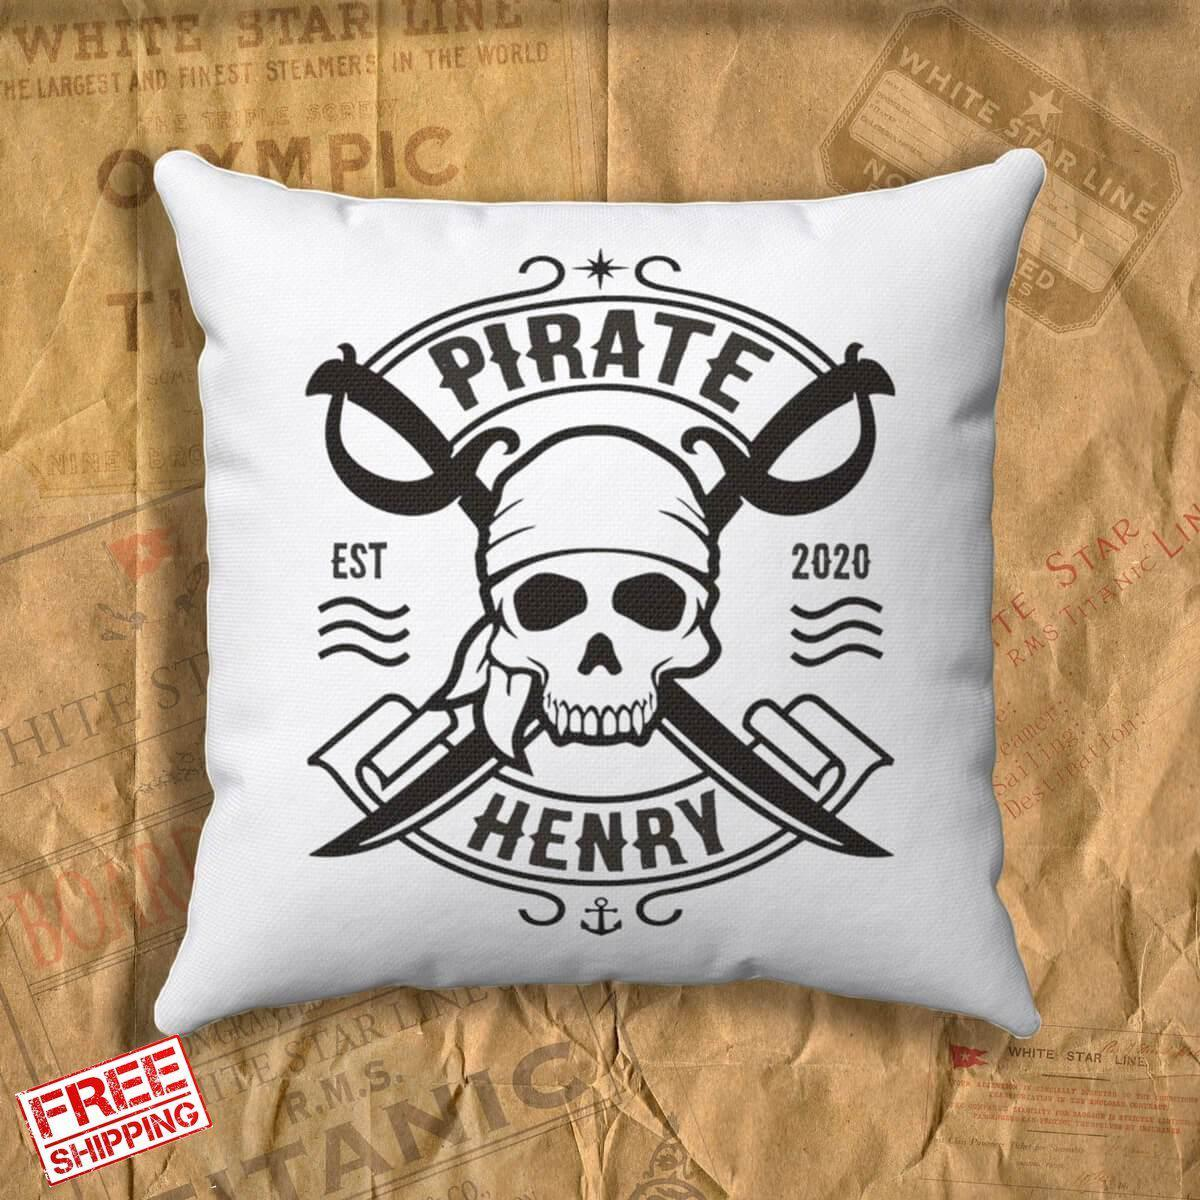 Personalized pillow & case, kids name custom pillow, designer pillow covers, personalized gift for boy 6 7 8 years old-Square pillow-Titanic shop-titanic-square-body-pillow-Titanic shop